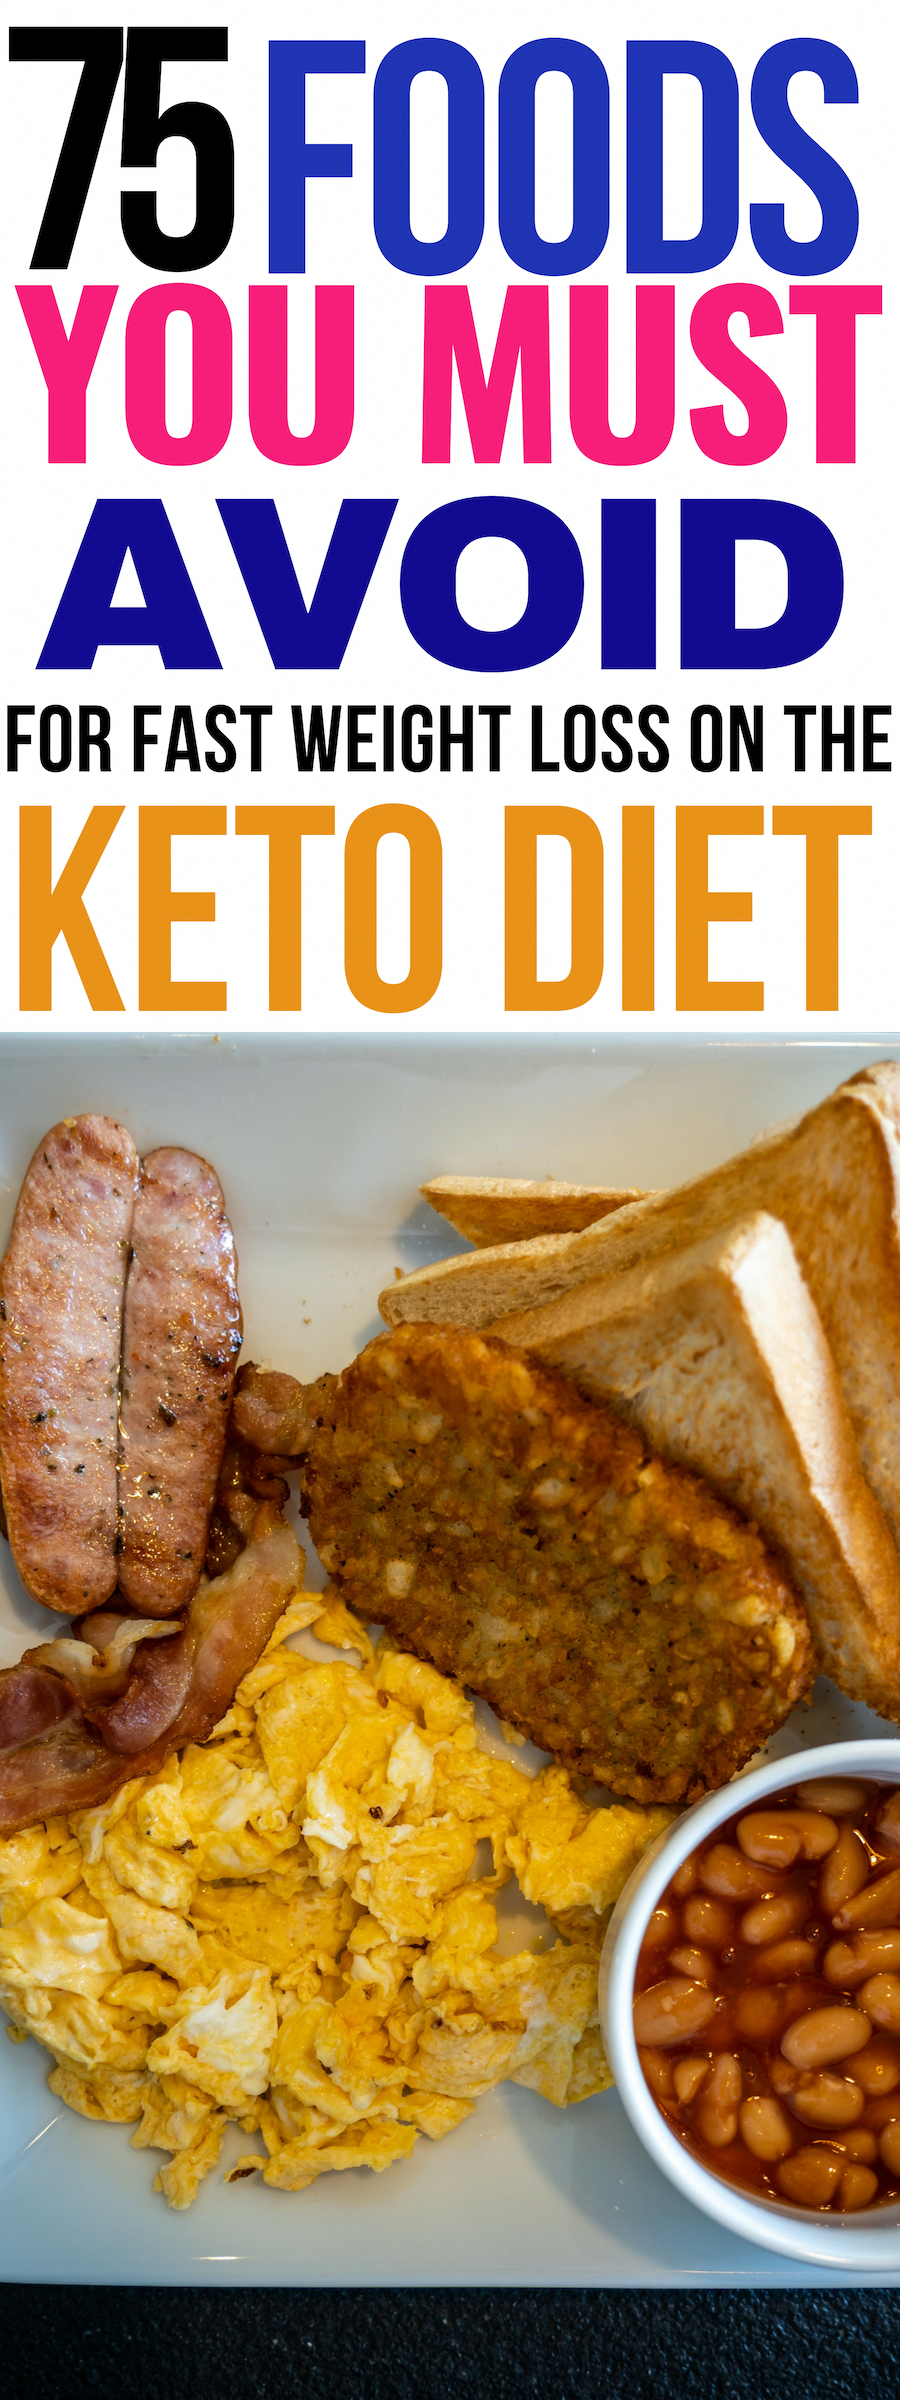 Pin on Average Weight Loss On Ketogenic Diet